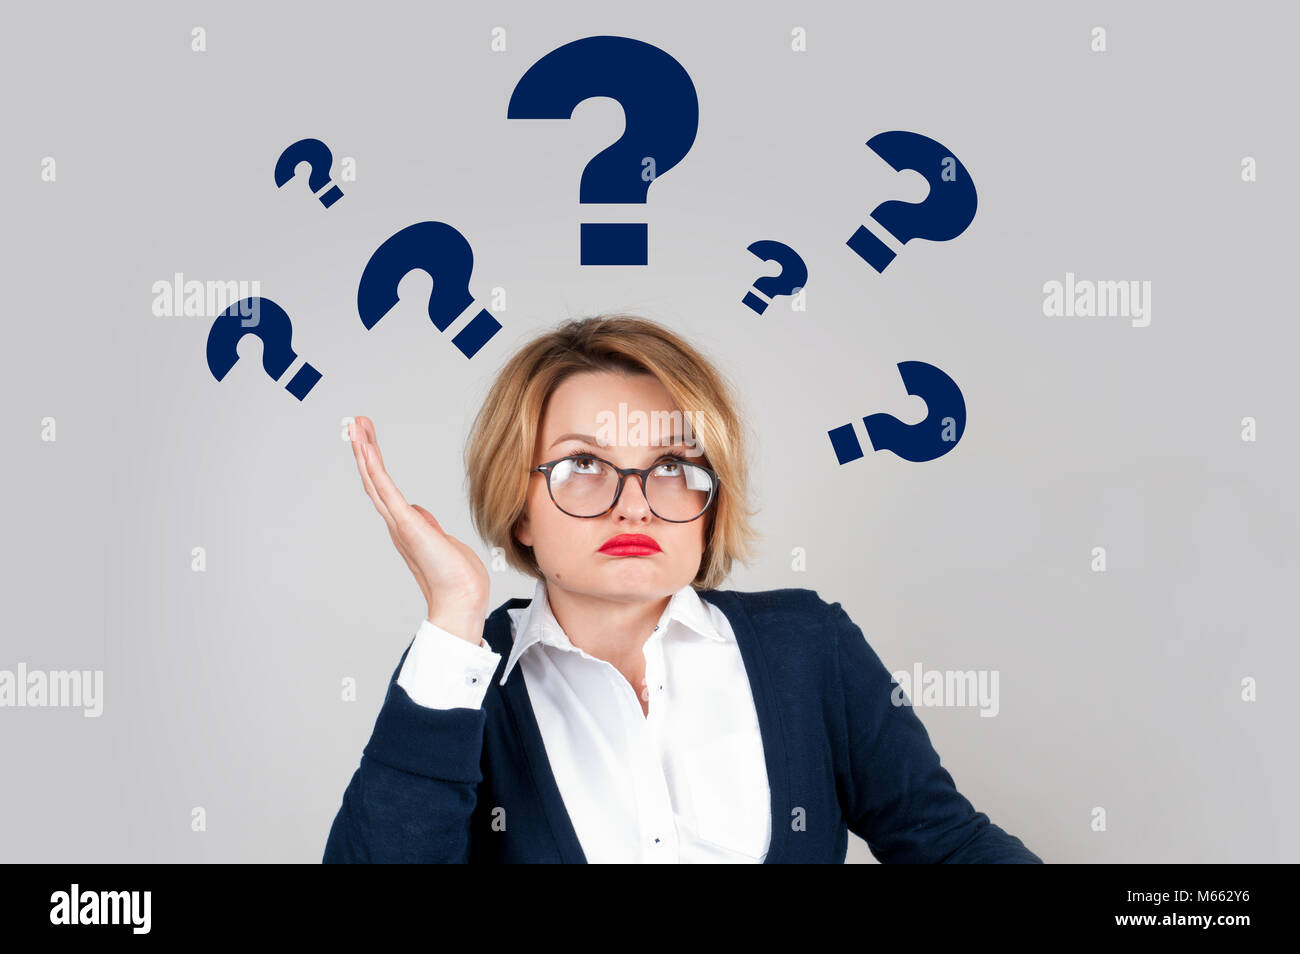 Thinking woman with questioning expression and question marks above her head - Stock Image